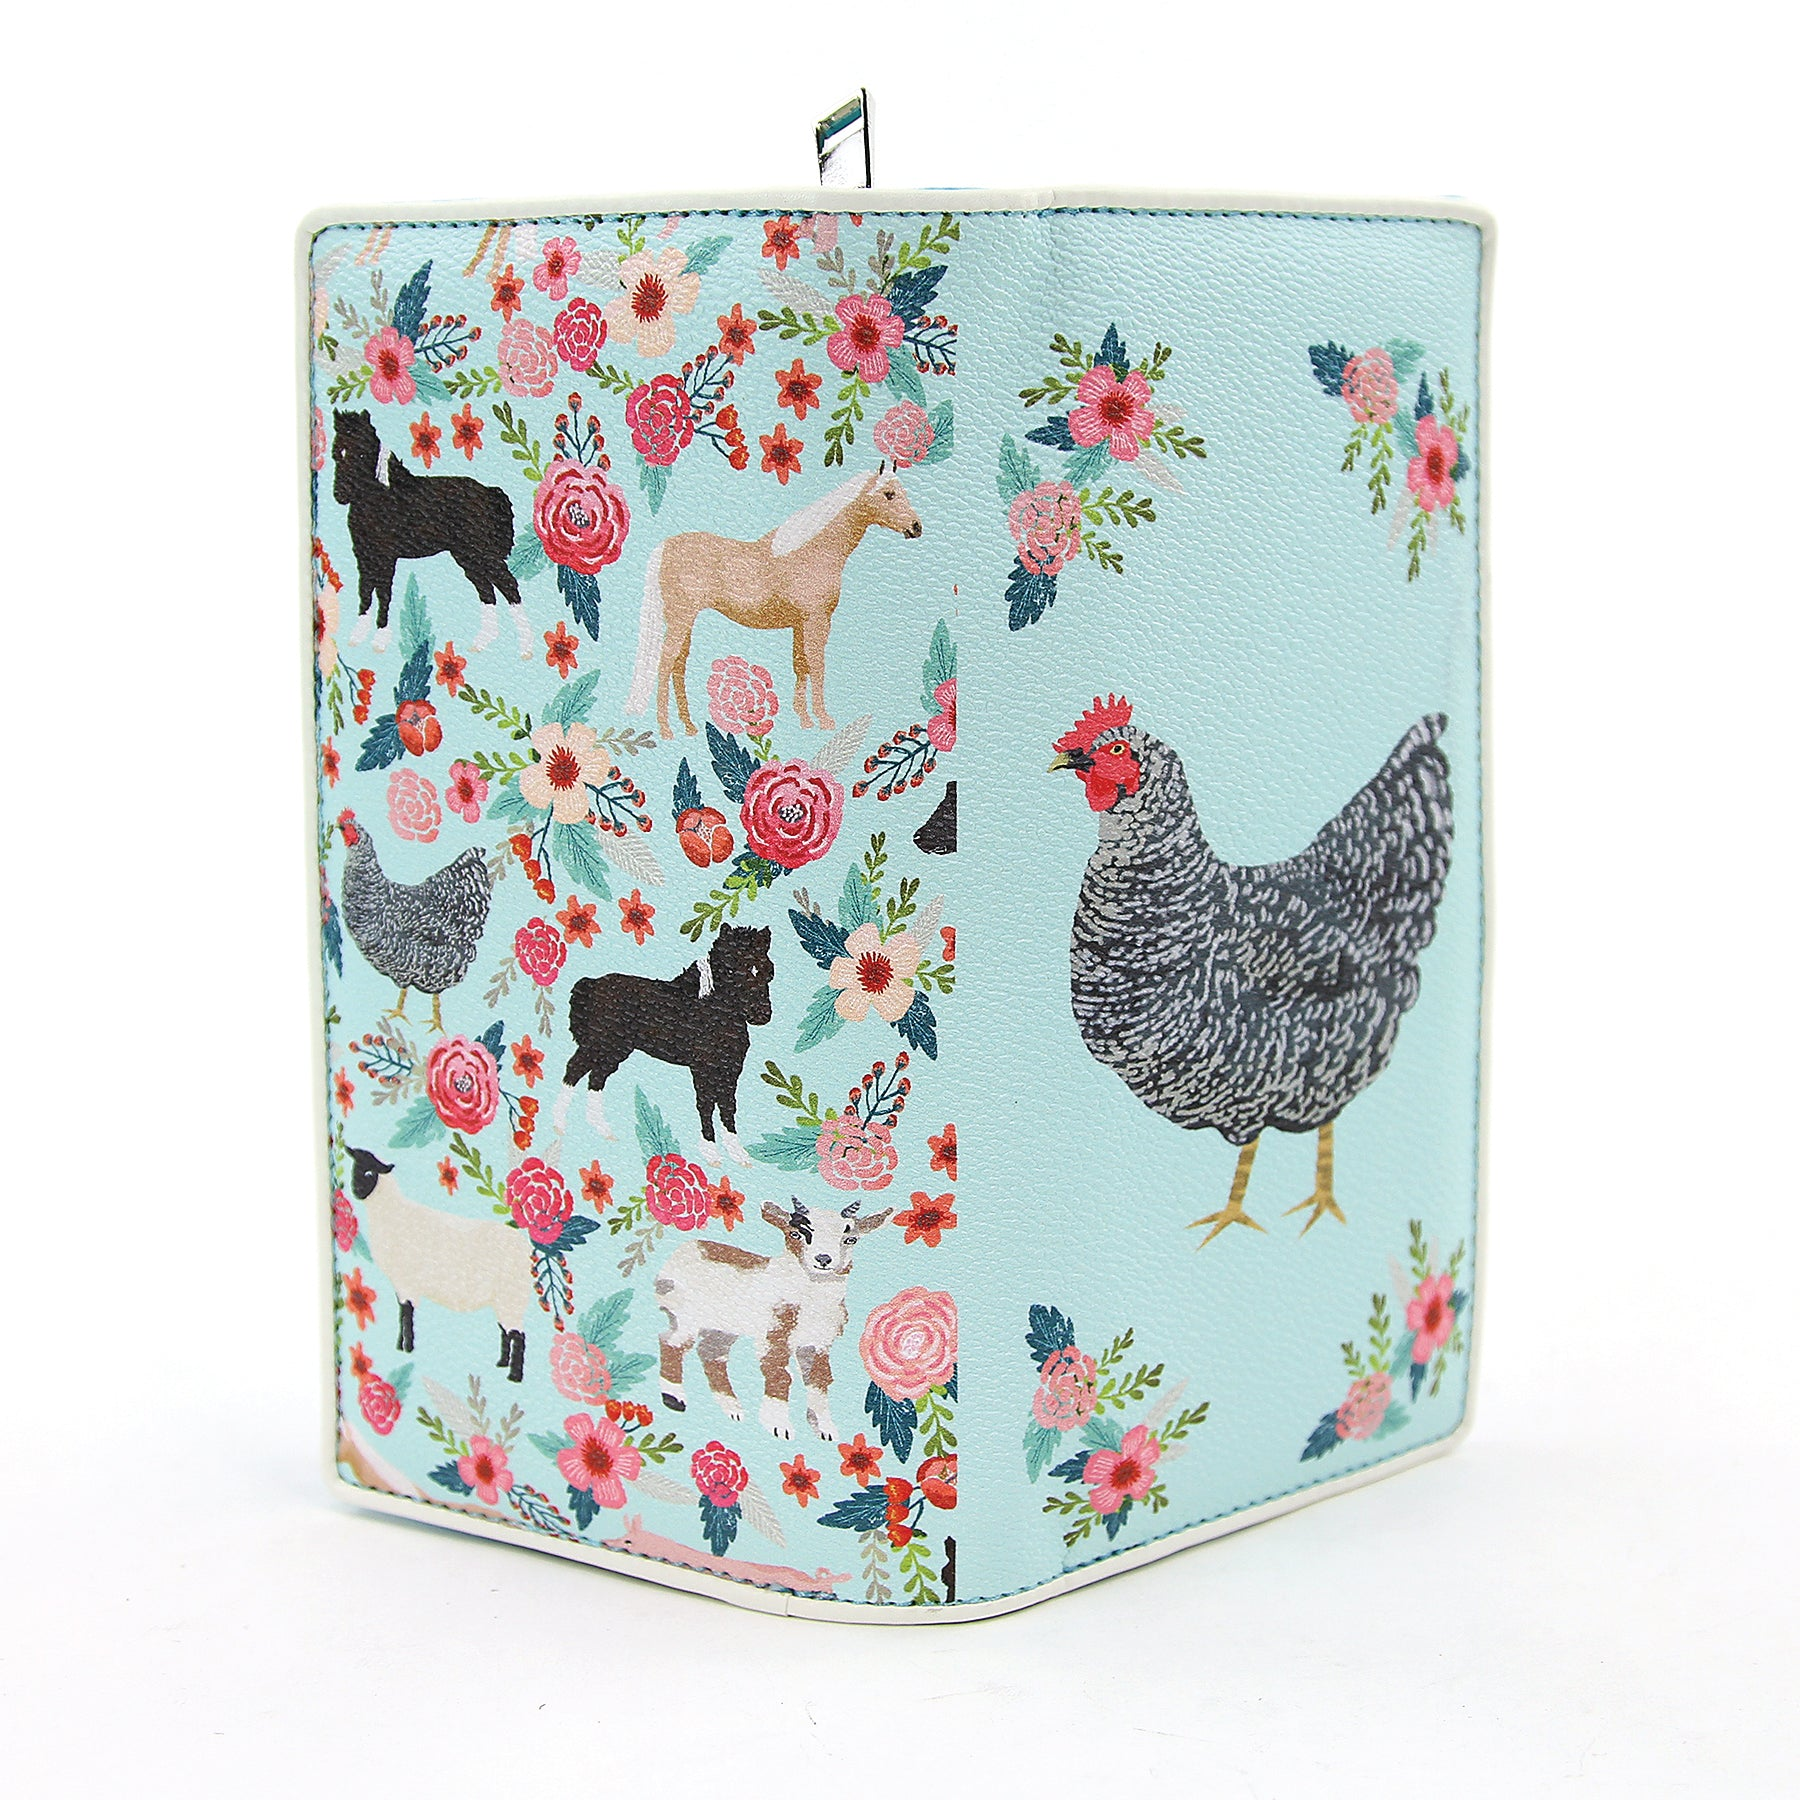 Chicken With Floral Wreath Wallet In Vinyl front open view